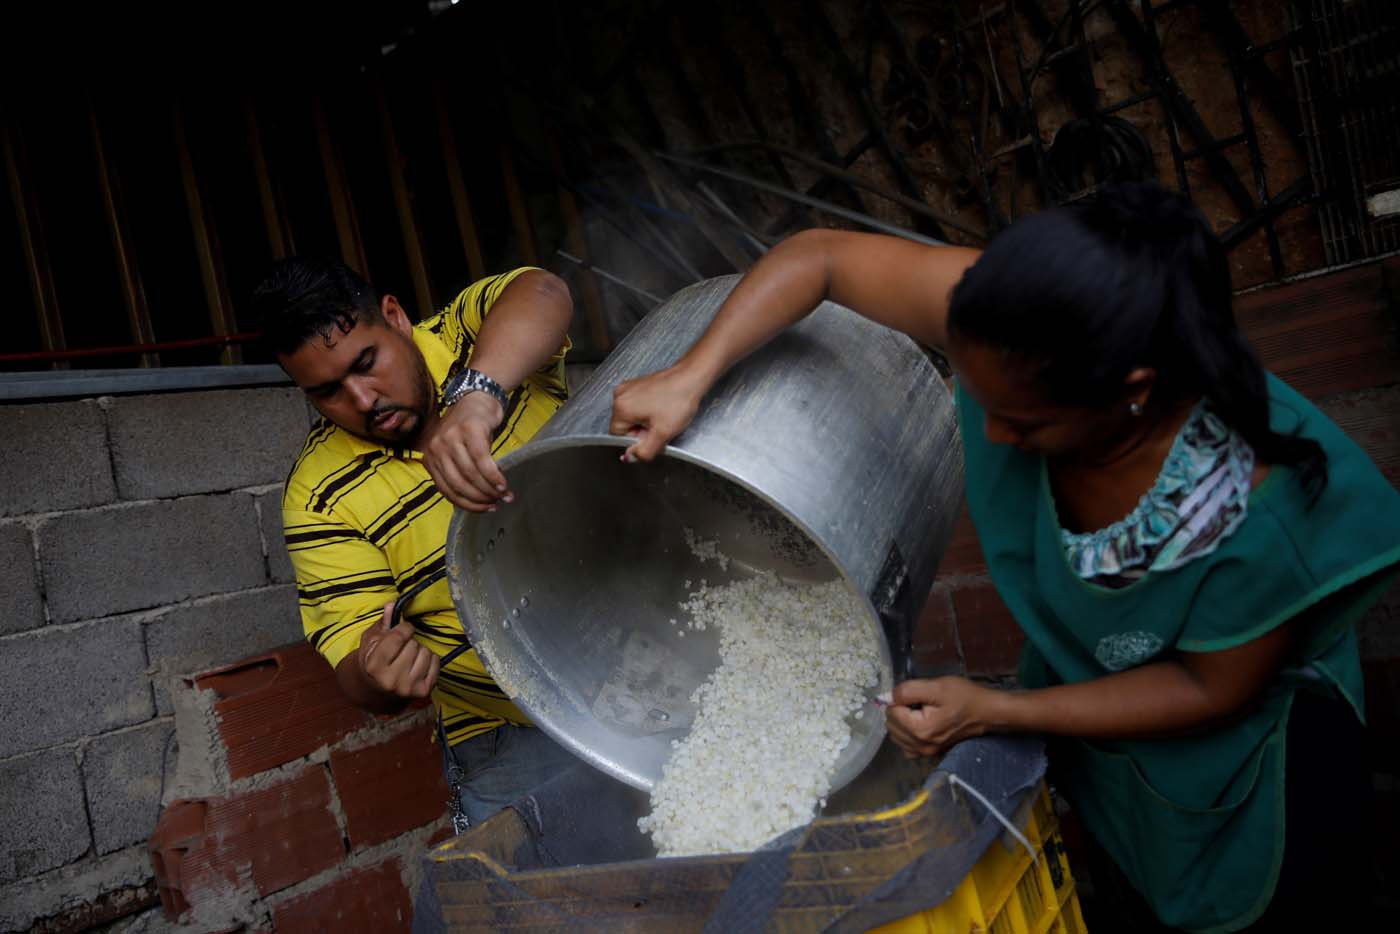 Medical equipment repairman Leandro Colmenares (L) makes corn dough at the backyard of his house in Caracas, Venezuela October 3, 2017. Picture taken October 3, 2017. REUTERS/Carlos Garcia Rawlins